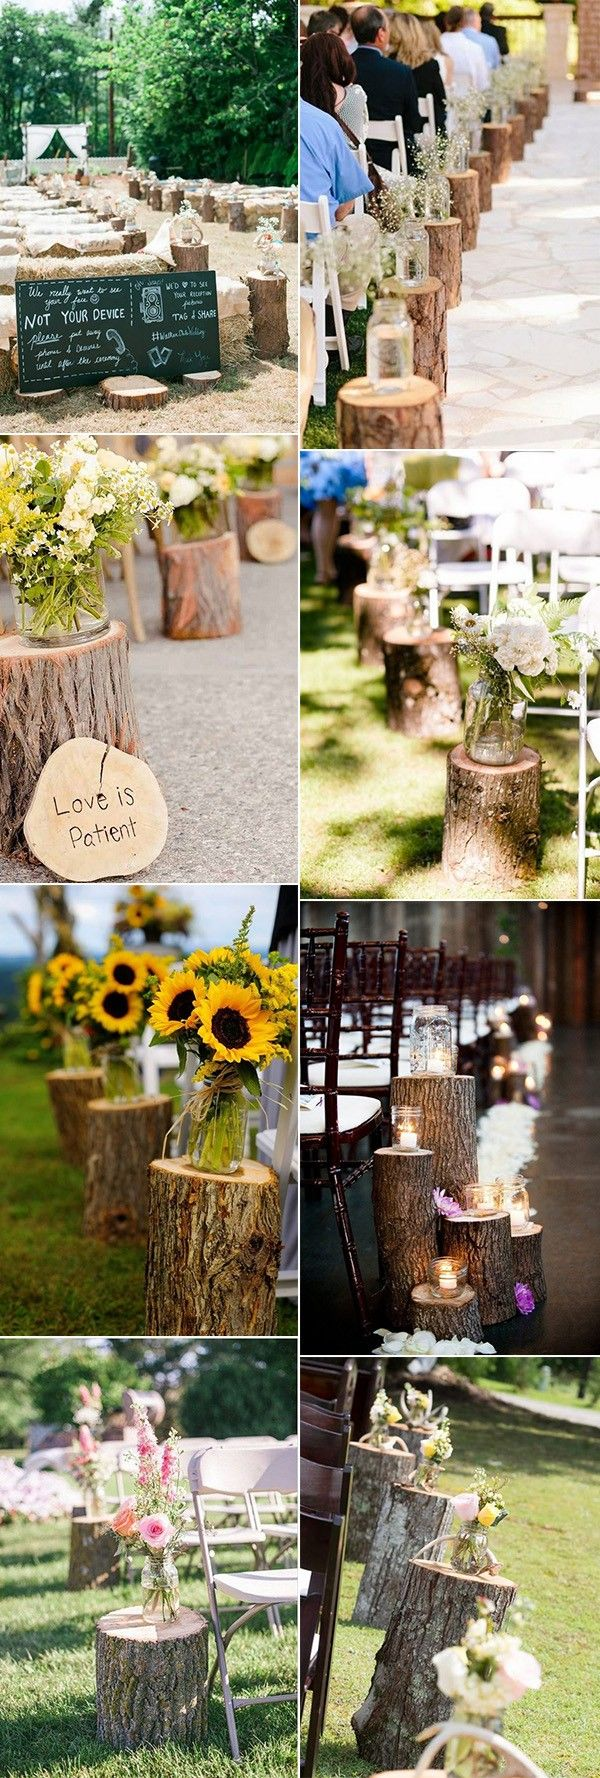 28 Country Rustic Wedding Decoration Ideas with Tree Stumps – my wedding